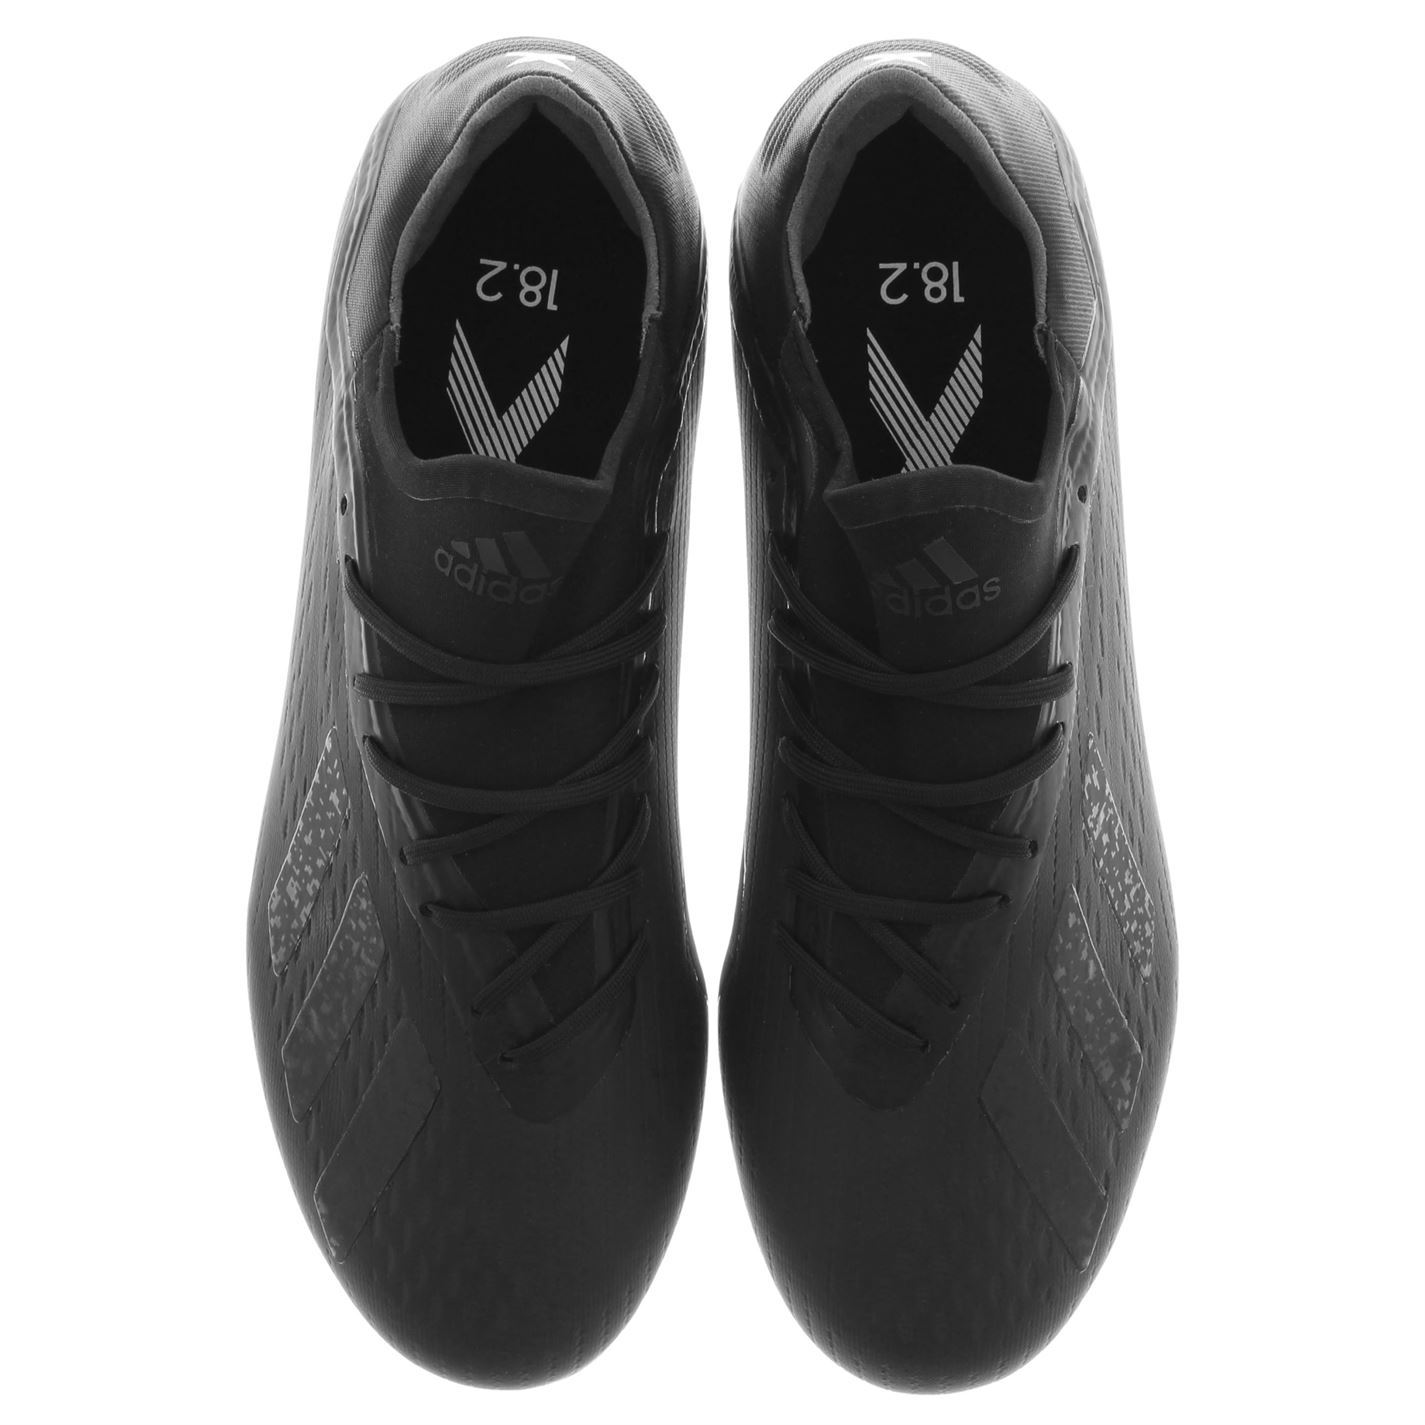 c98180a6adf ... adidas X 18.2 FG Firm Ground Football Boots Mens Black Soccer Shoes  Cleats